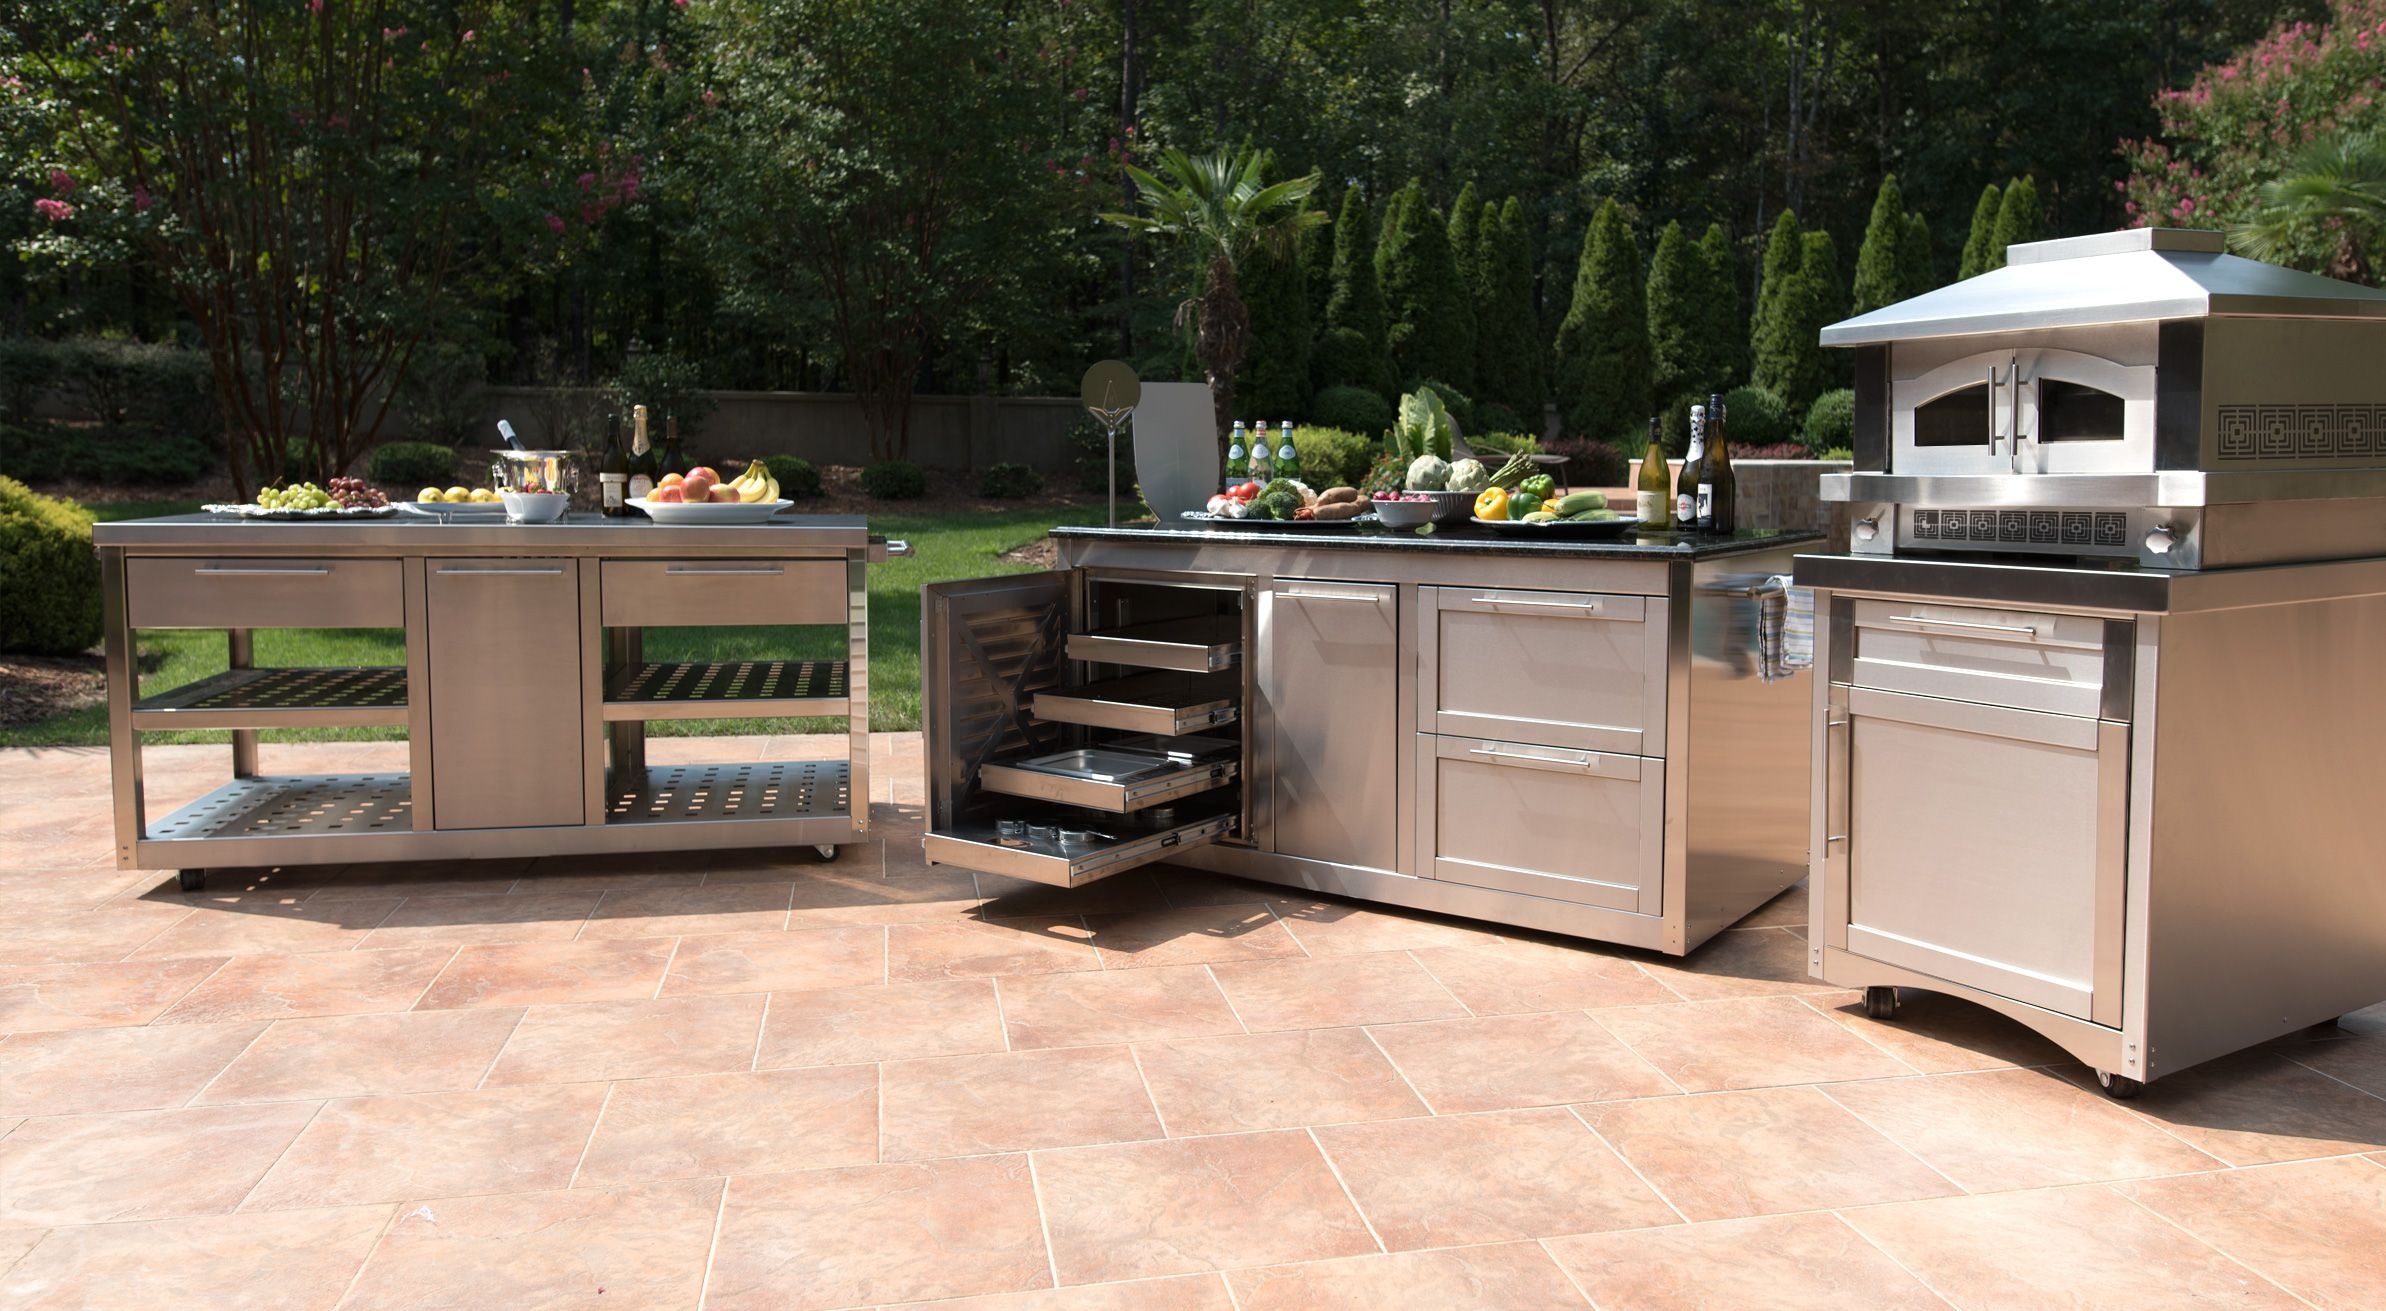 Sloan Outdoor Kitchens Manufactures The Best Stainless Steel Outdoor Kitchen Ca Outdoor Kitchen Cabinets Outdoor Kitchen Countertops Outdoor Kitchen Appliances